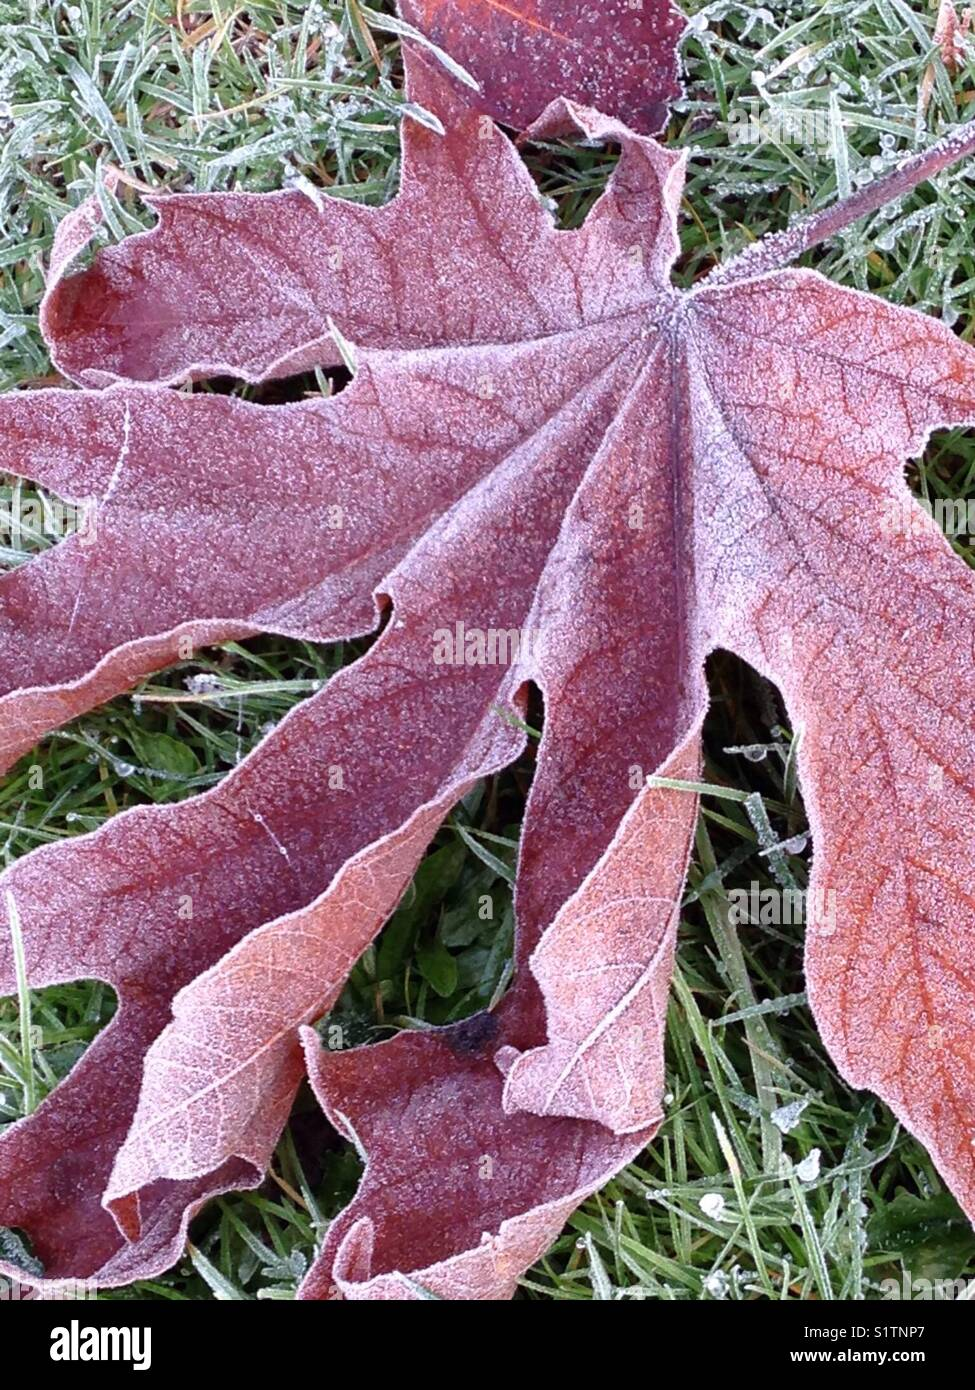 Large Leaf Maple leaf covered in frost on the ground - Stock Image